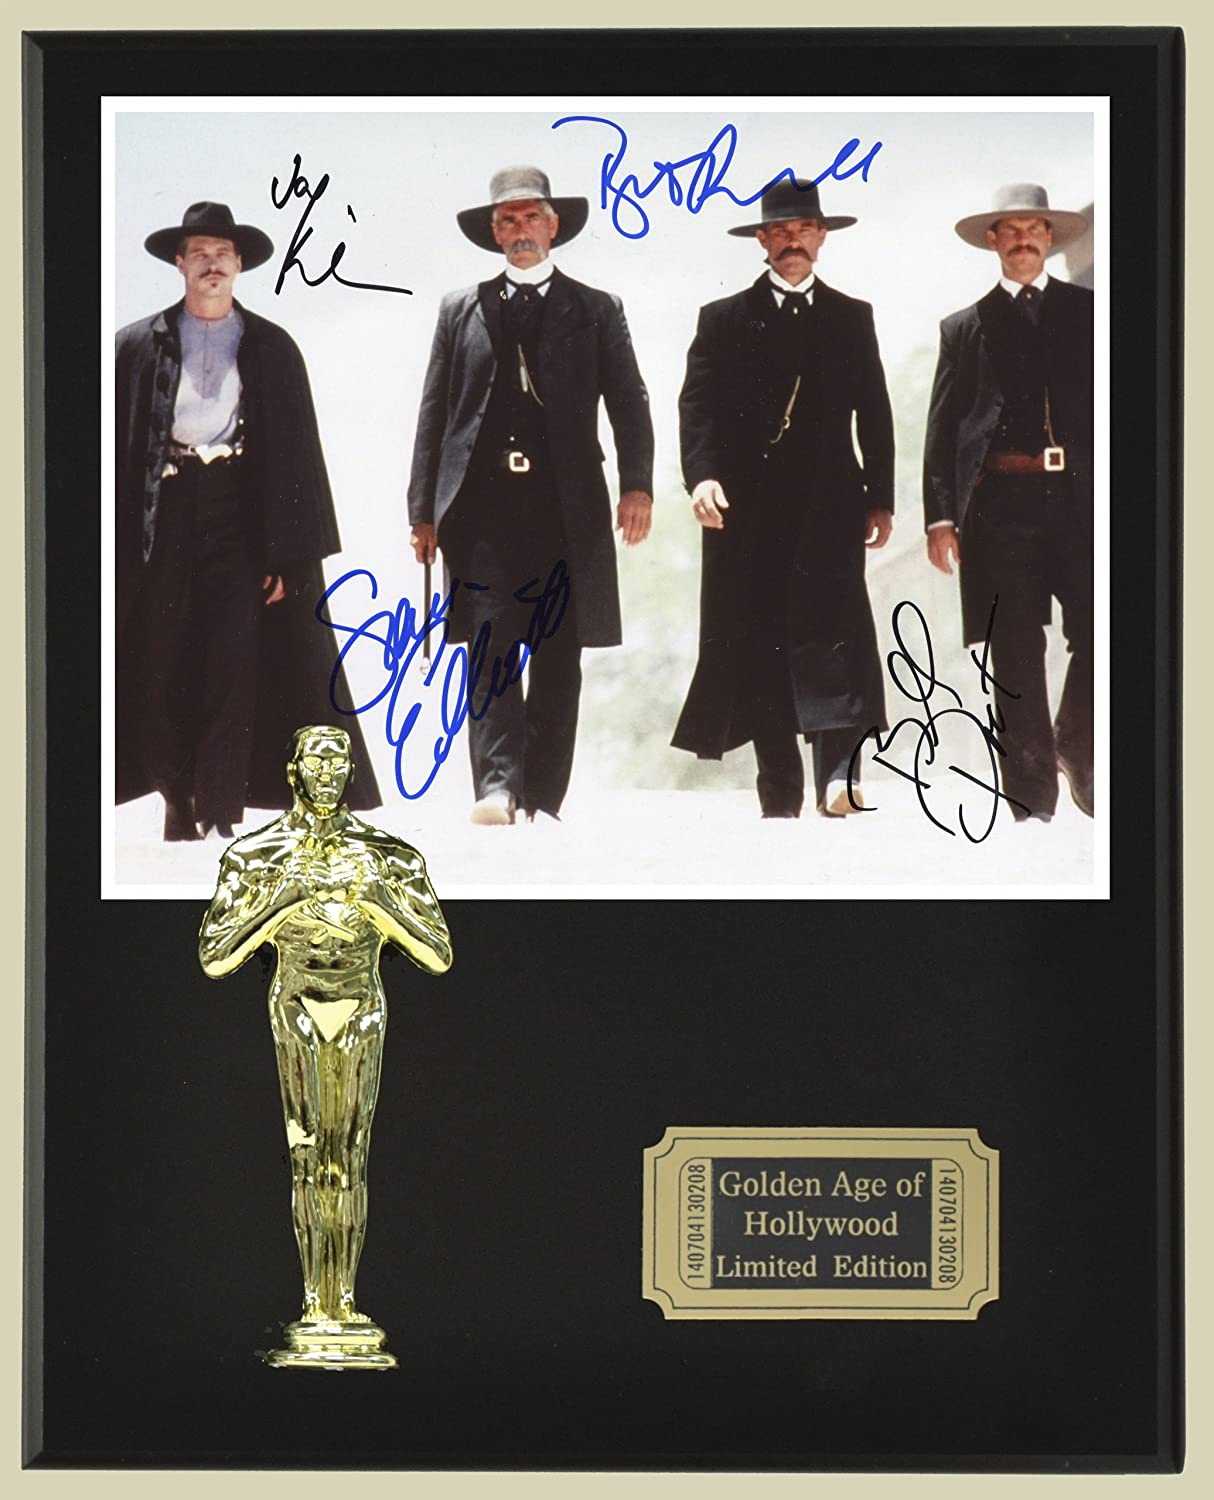 Tombstone Cast Signed Reproduction Autographed 8 x 10 Photo LTD Edition Oscar Movie Display Gold Record Outlet